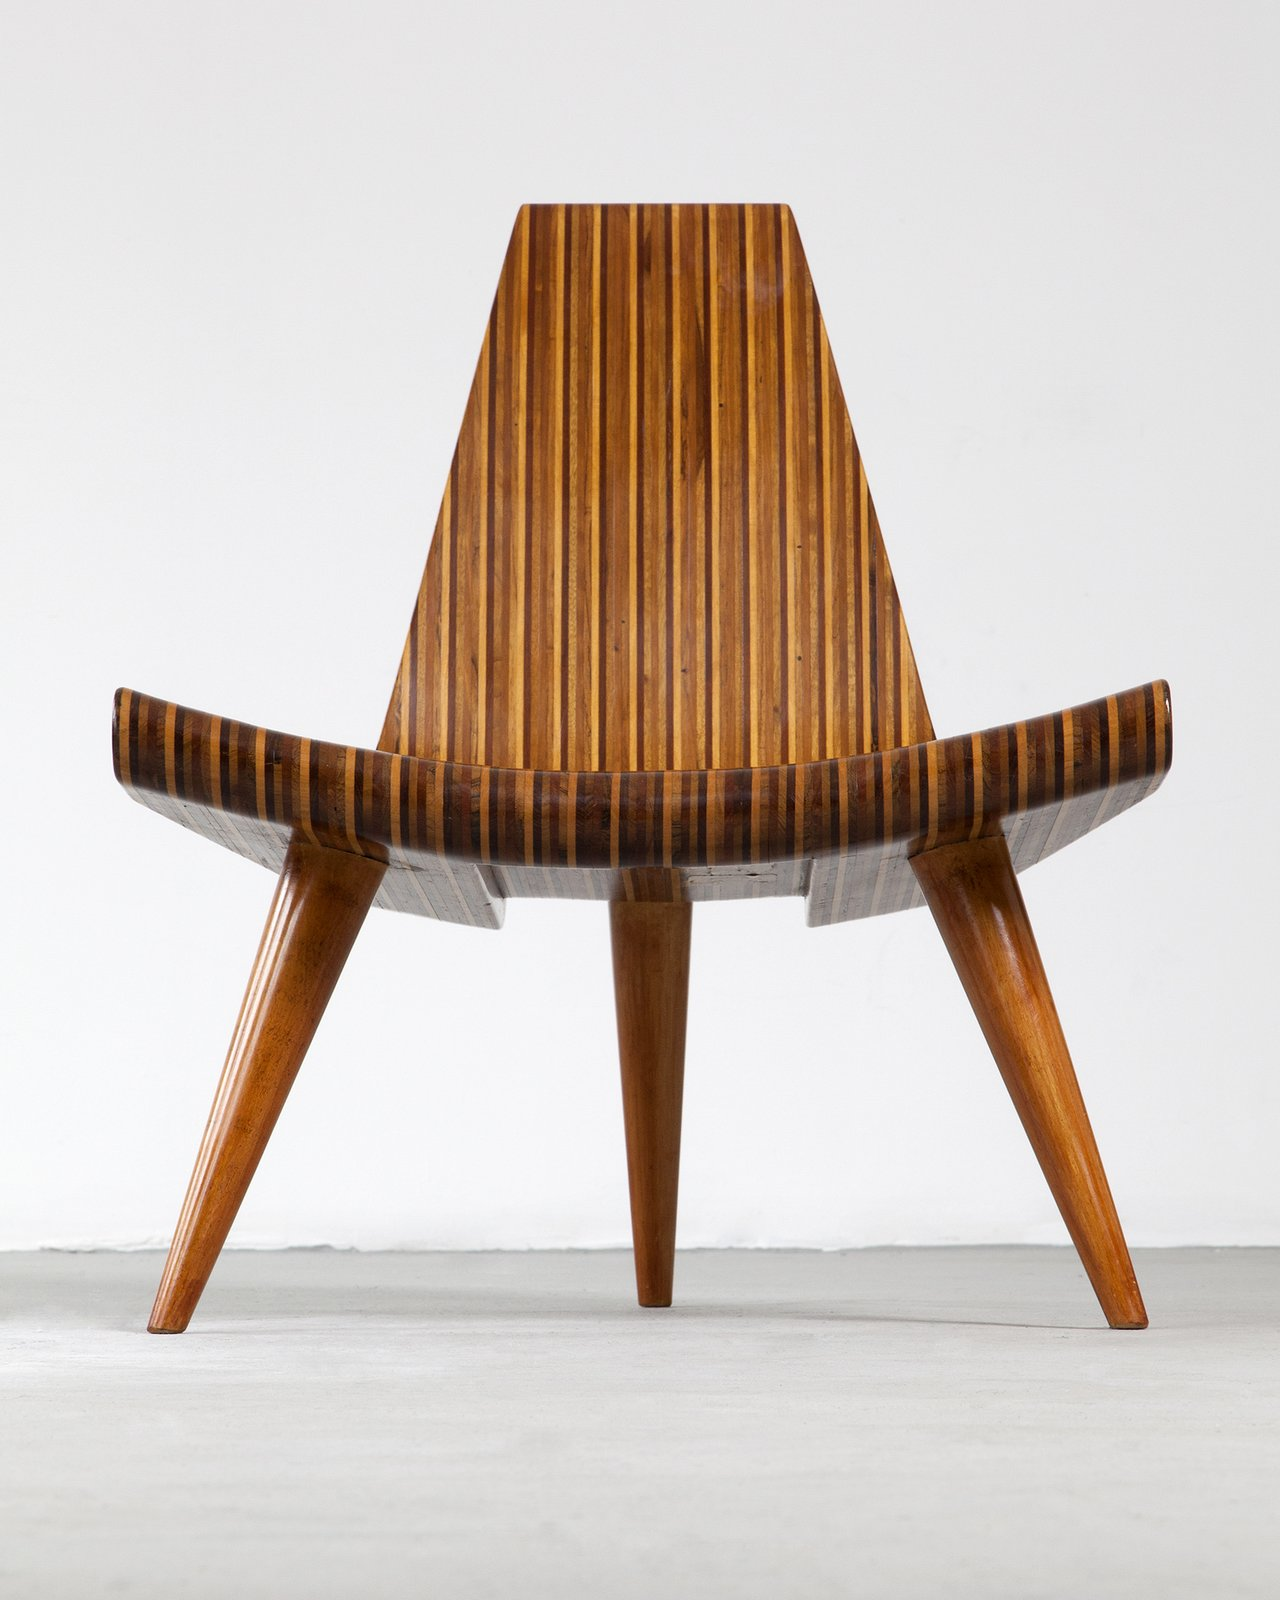 Widely consider the first modern master of Brazilian design, Joaquim Tenreiro created many timeless classics. His contribution to Brazilian design is evident by his designs that made hardwood furniture sleeker and lighter. Tenreiro's 1947 Three-Legged chair was laminated in multiple woods that included native species such as imbuia, roxinho, jacaranda, ivory, and cabreúa. In this example, the chair is made in five different types of hard wood, with bonded laminated. The chair celebrates the material with its inventive form and combinations of wood.  100+ Best Modern Seating Designs from Bring the Best of Brazilian Modernism to Your Home with This New Book